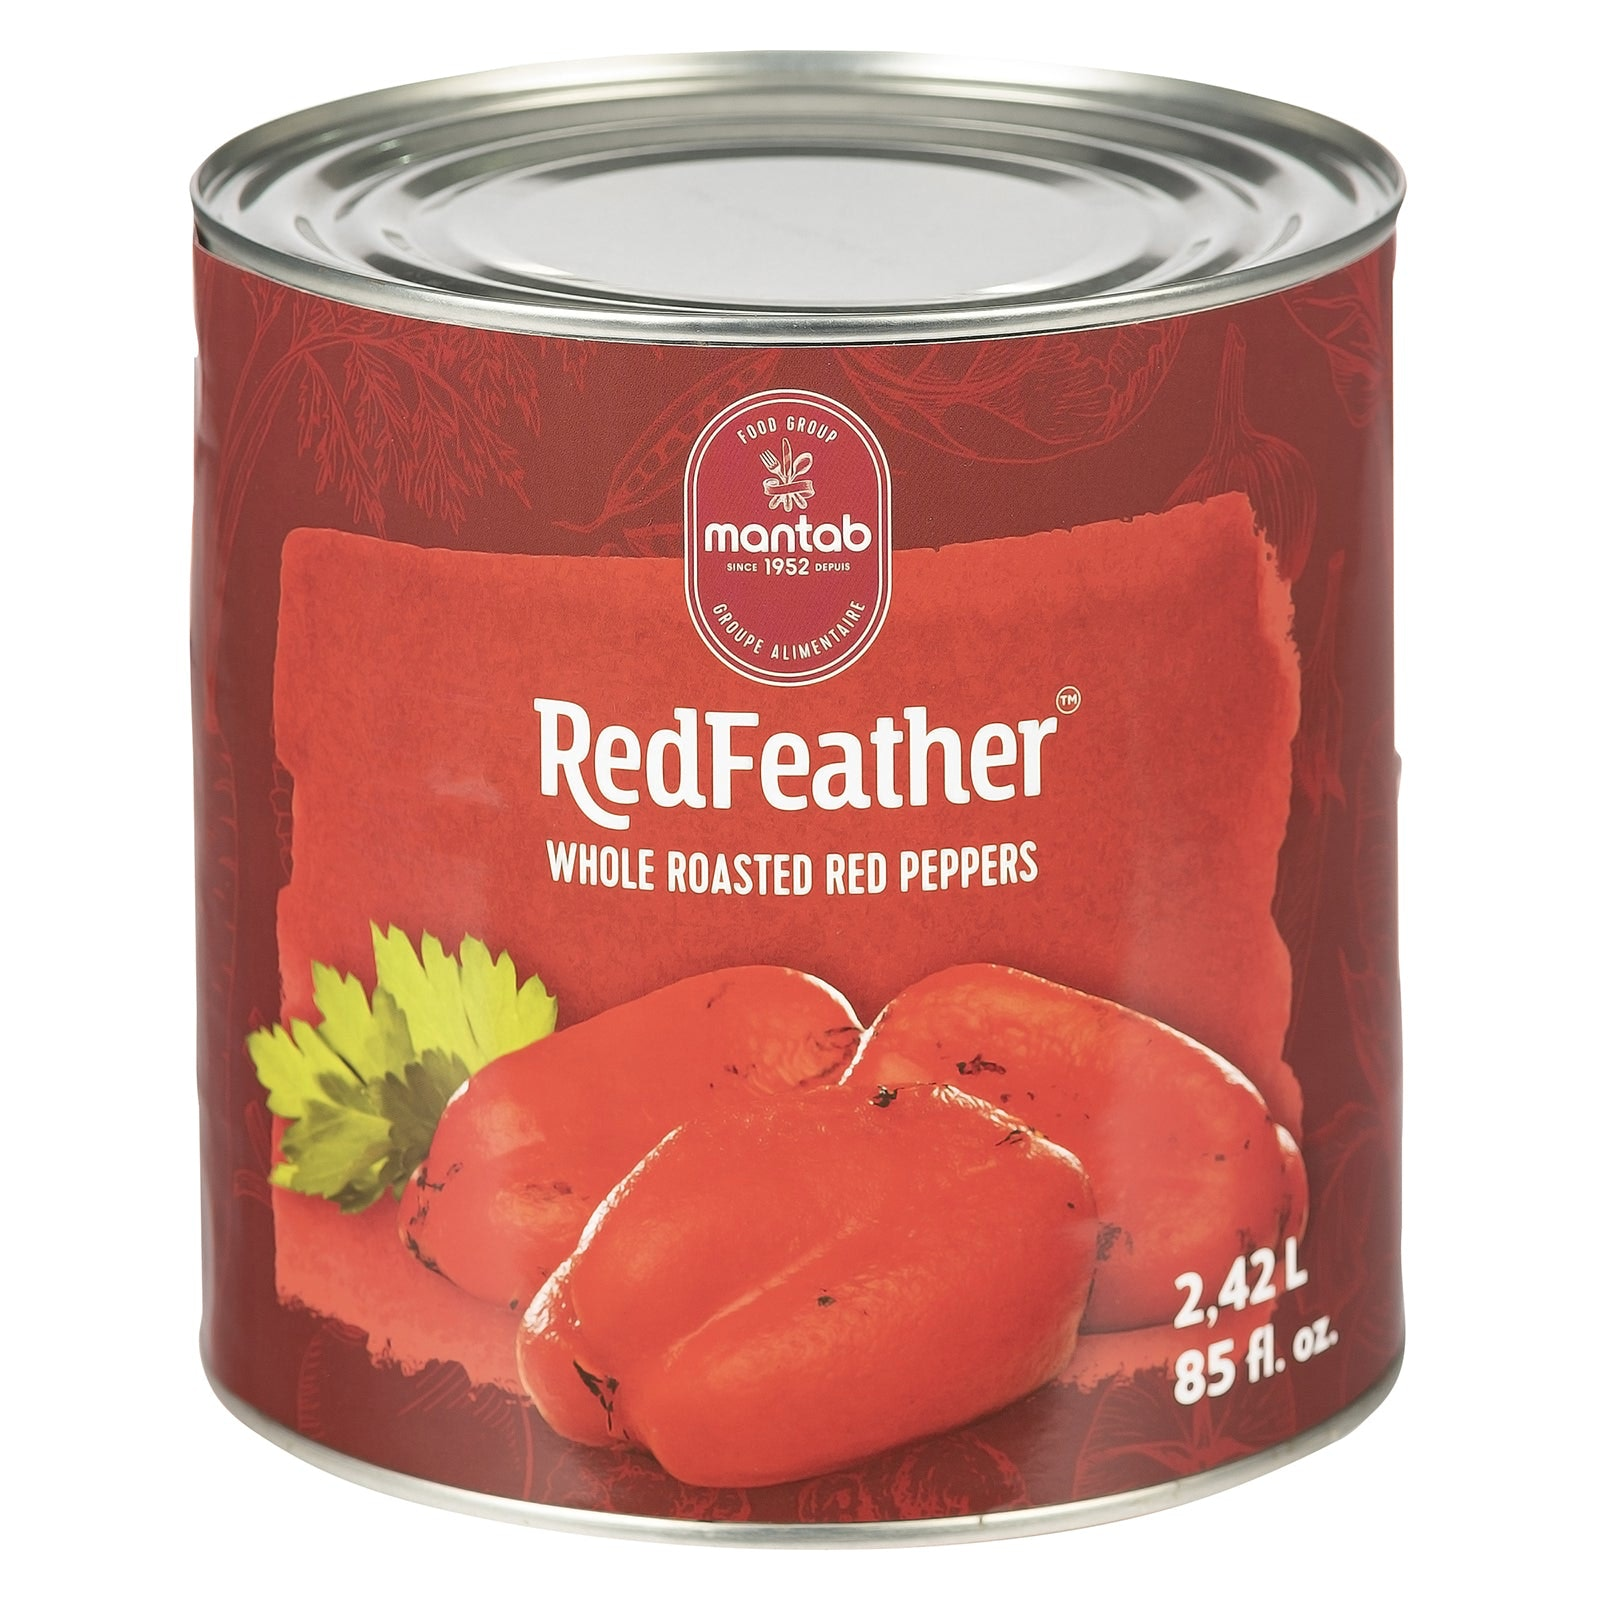 RED FEATHER Whole roasted red peppers